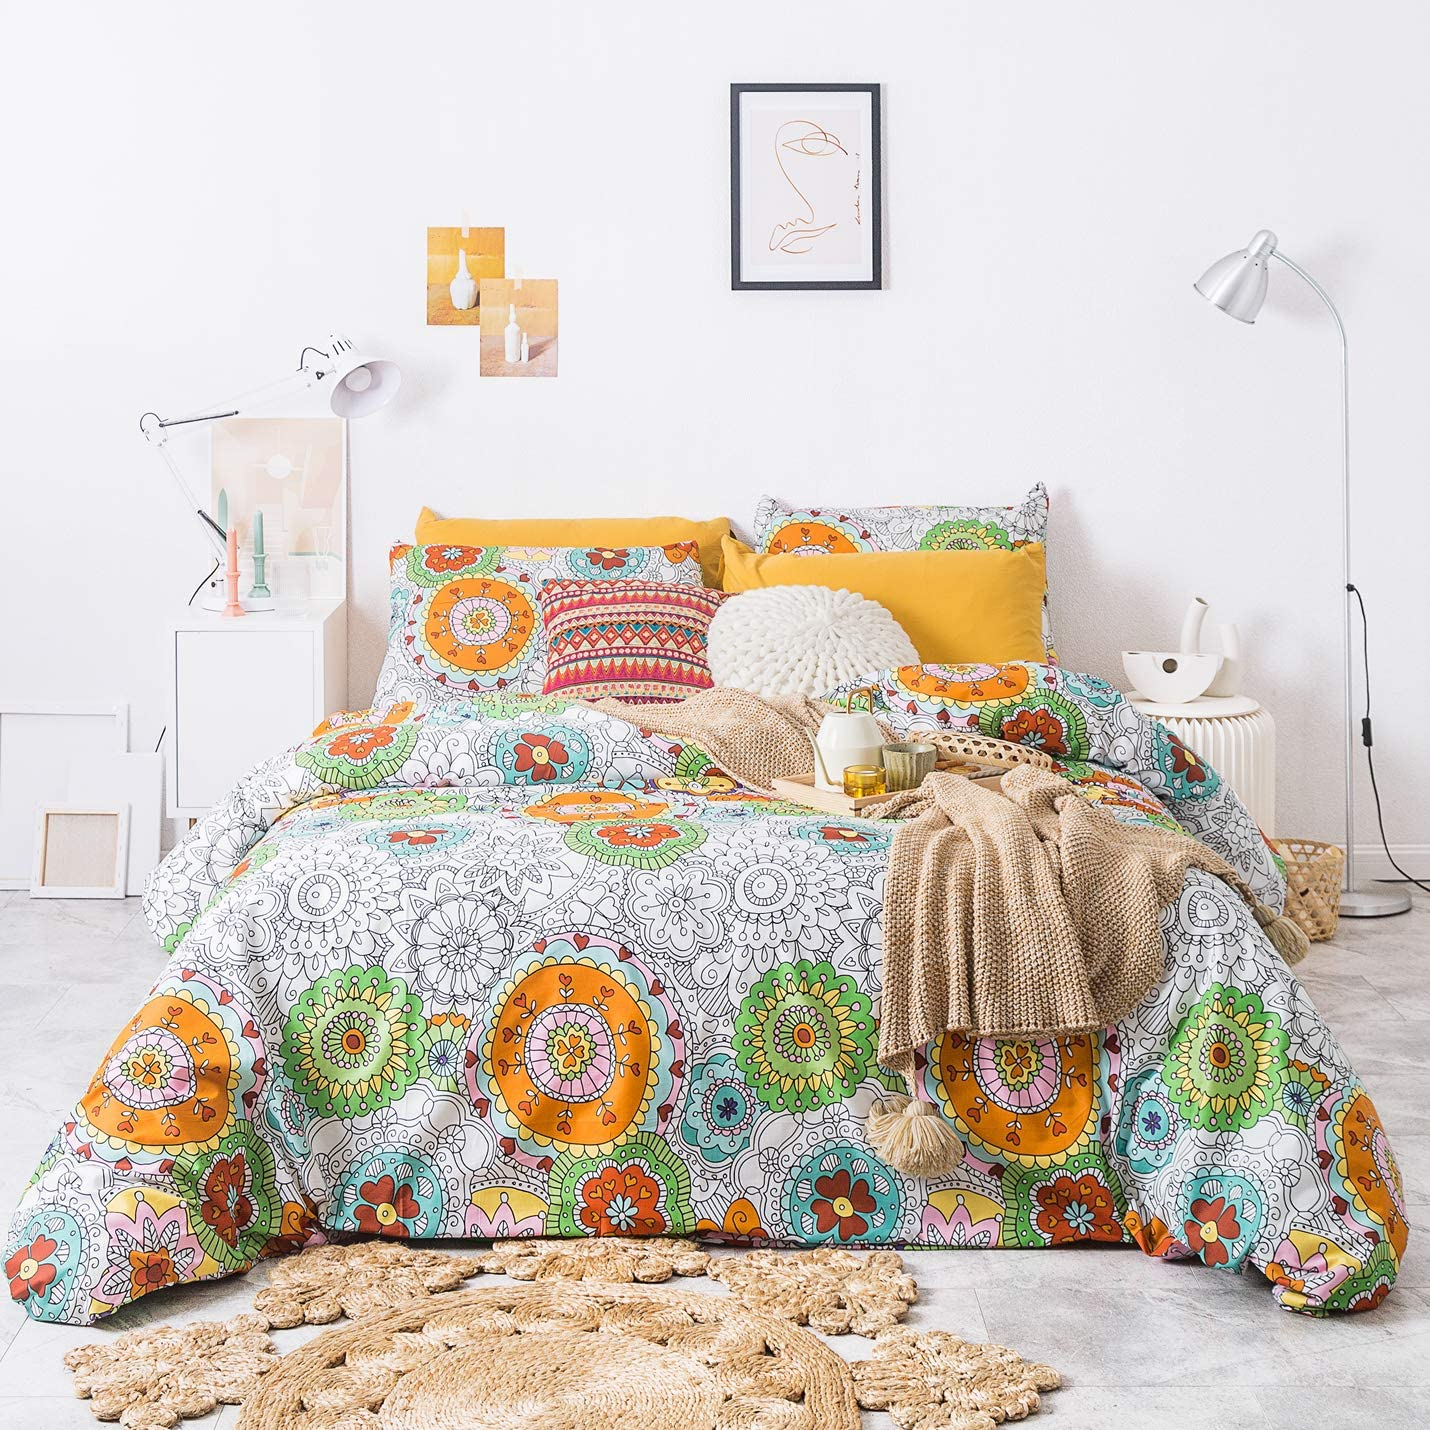 YuHeGuoJi 3 Pieces Duvet Cover Set 100% Cotton King Size Boho Floral Bedding Set 1 Multicolor Geometric Print Duvet Cover with Zipper Ties 2 Pillowcases Hotel Quality Soft Breathable Lightweight